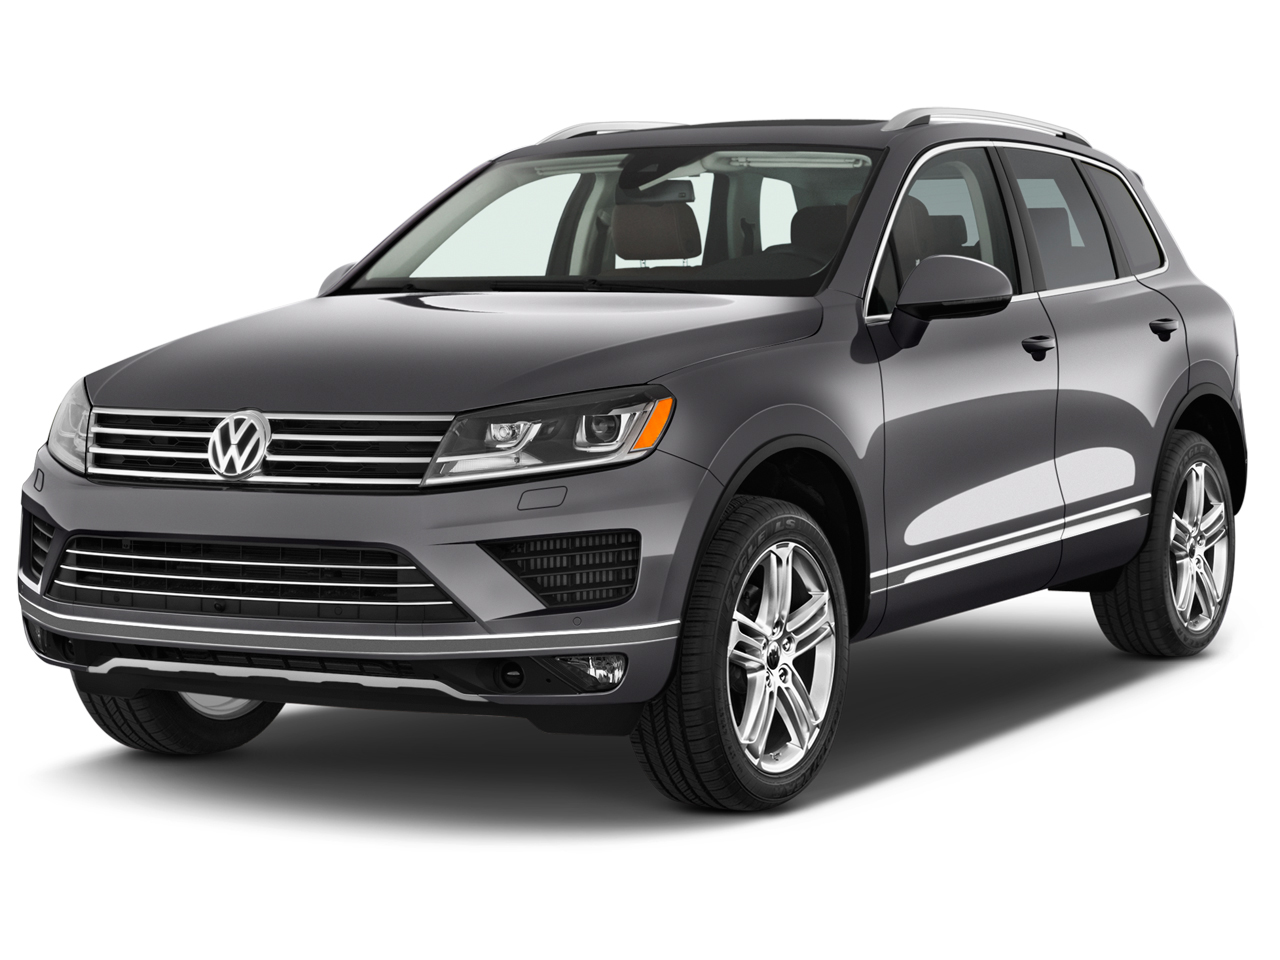 2016 volkswagen touareg vw review ratings specs prices and photos the car connection. Black Bedroom Furniture Sets. Home Design Ideas